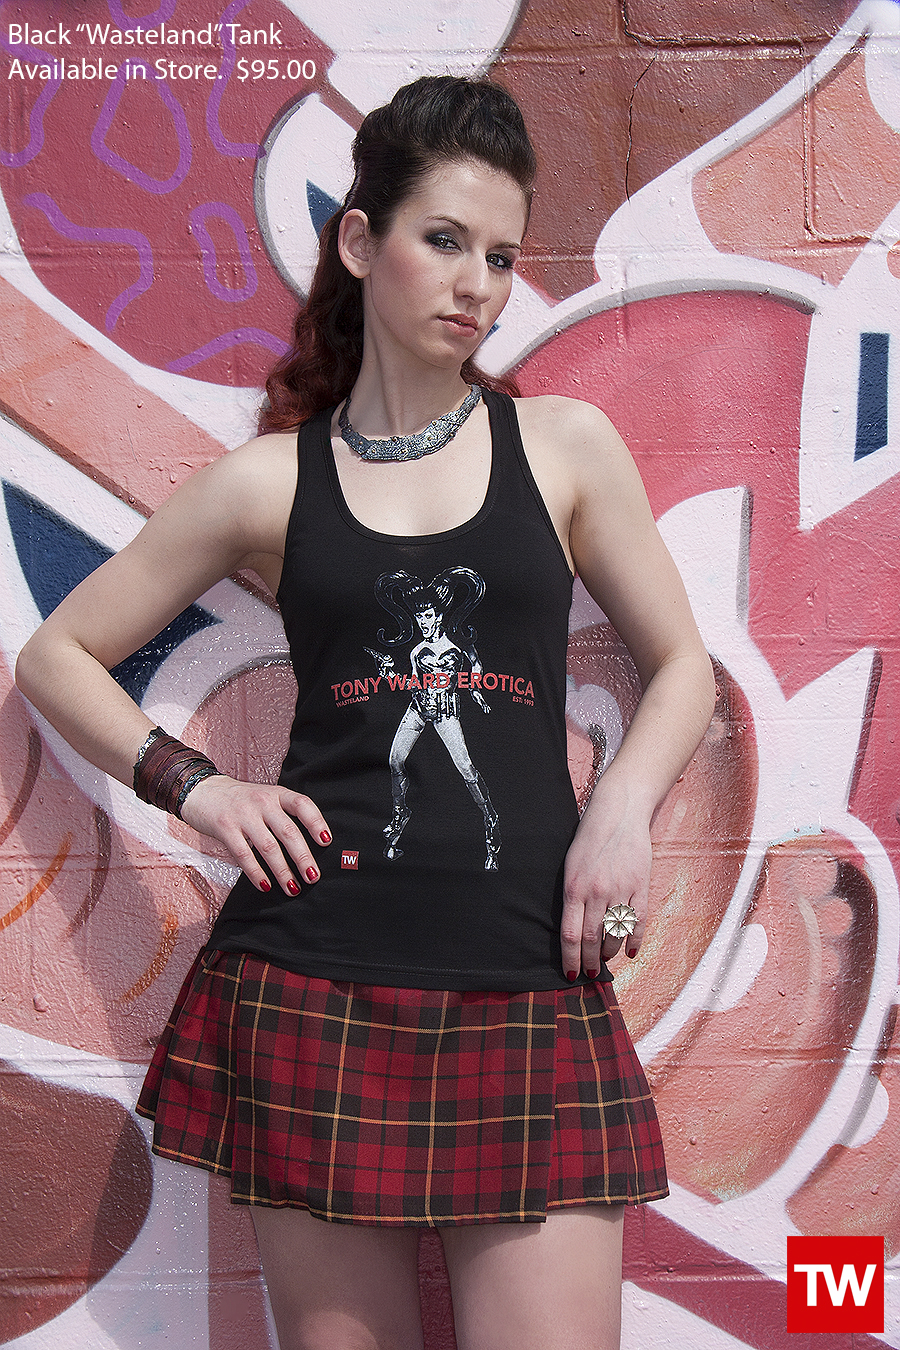 Tony_Ward_Studio_e_commerce_store_t-shirts_black_Wasteland_tank_sale_model_Julia